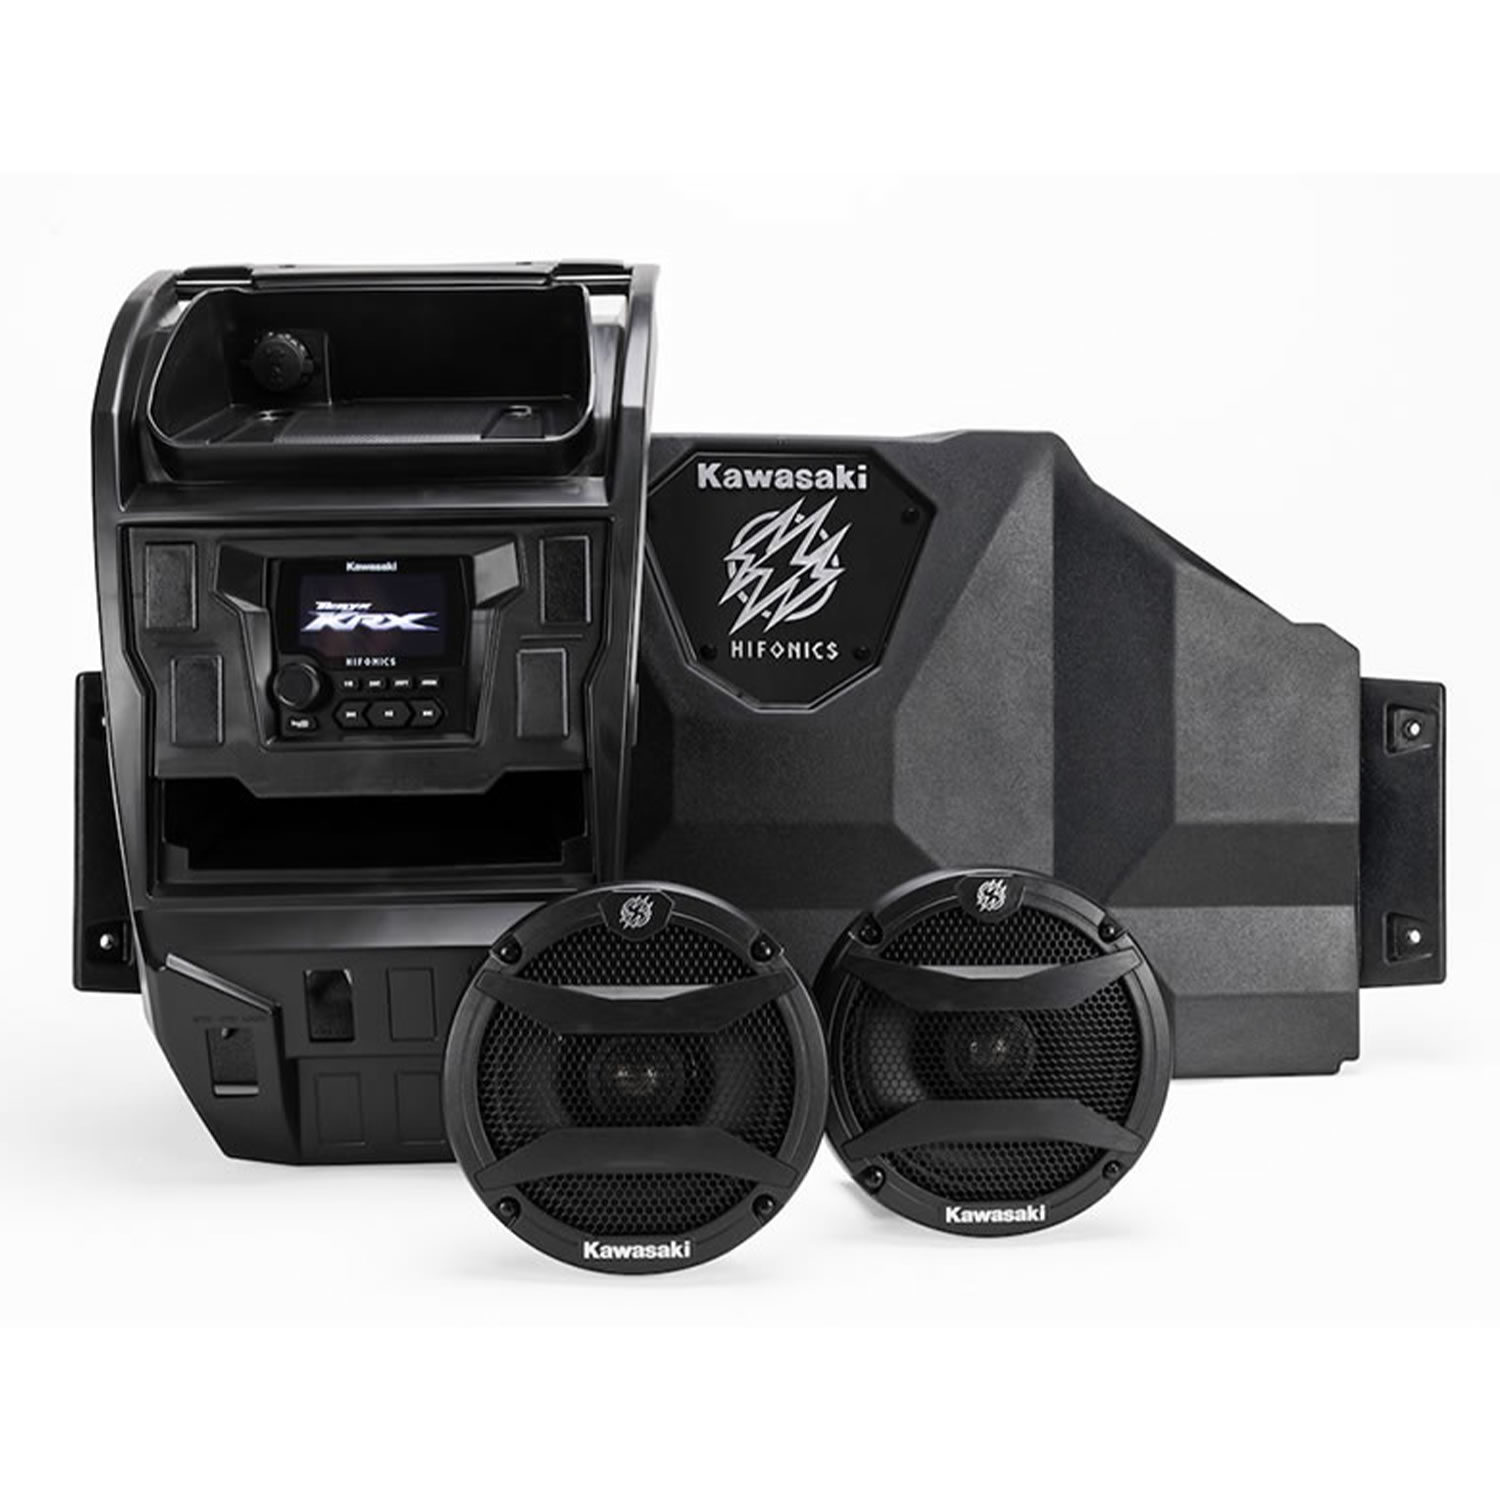 Kawasaki All-in-Ones & Audio Systems